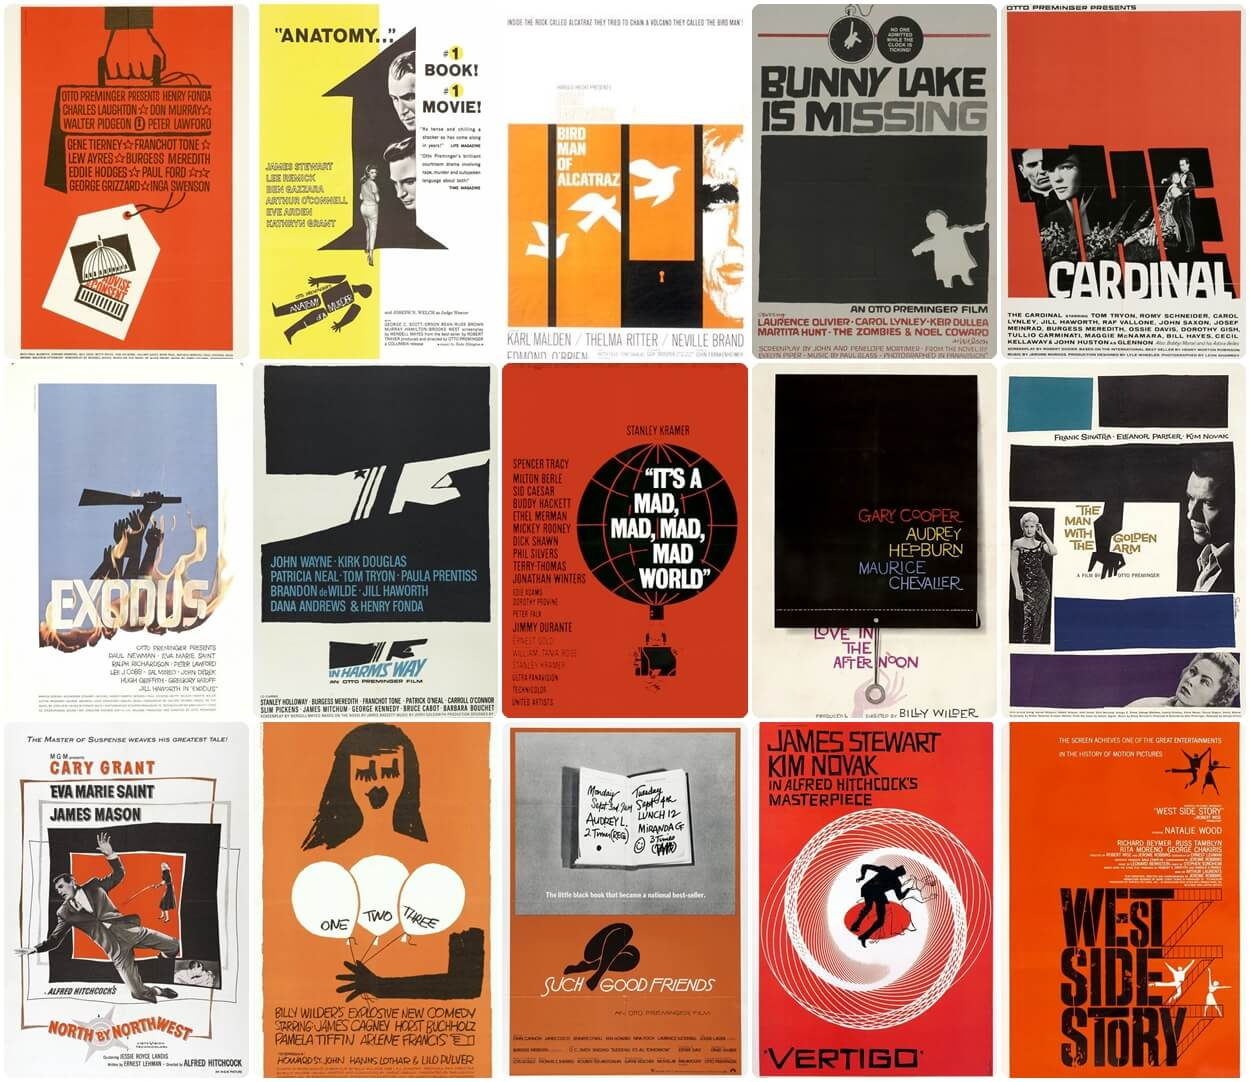 Collection of Saul Bass posters